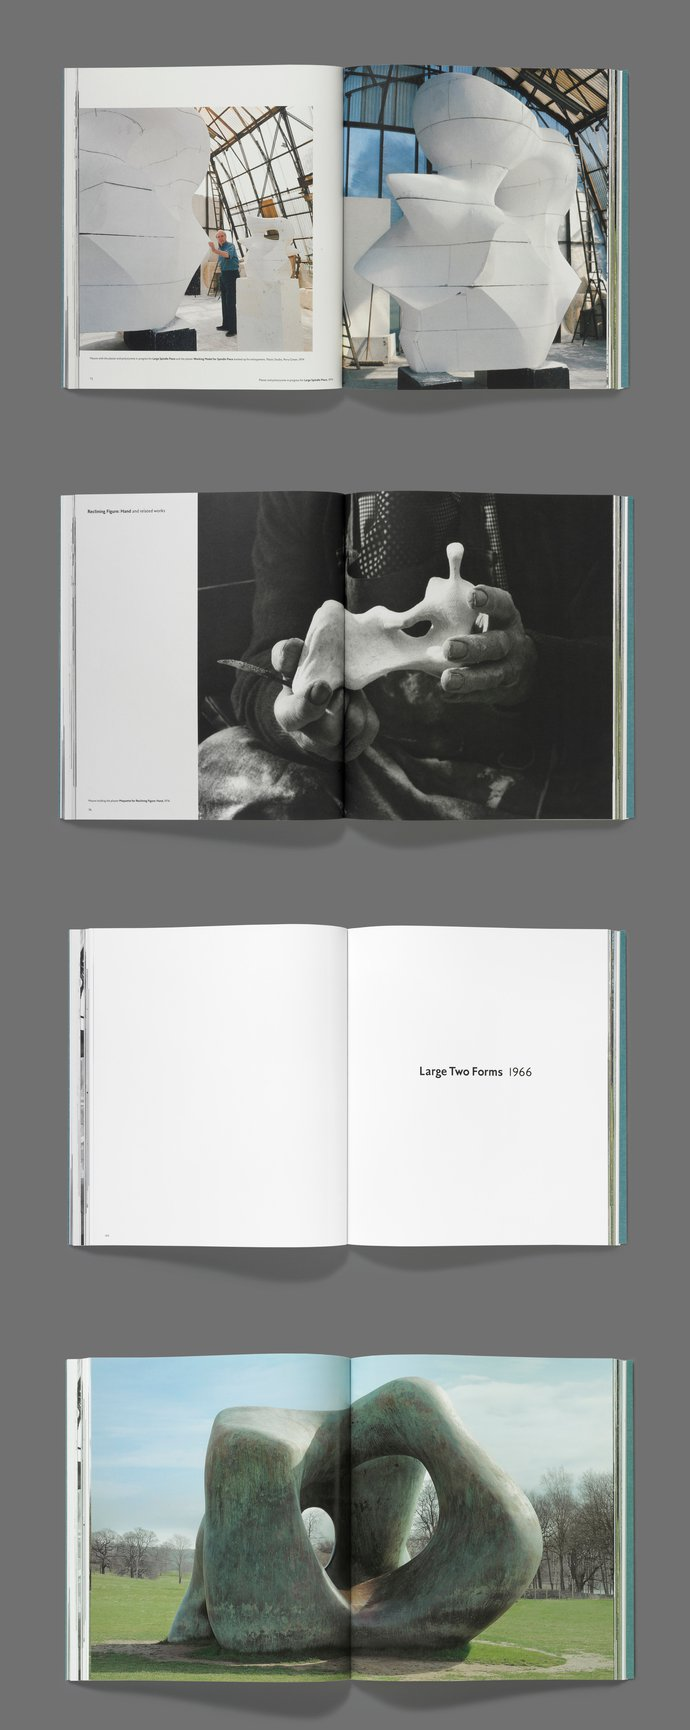 Gagosian – Henry Moore: Late Large Forms, 2012 (Publication), image 6